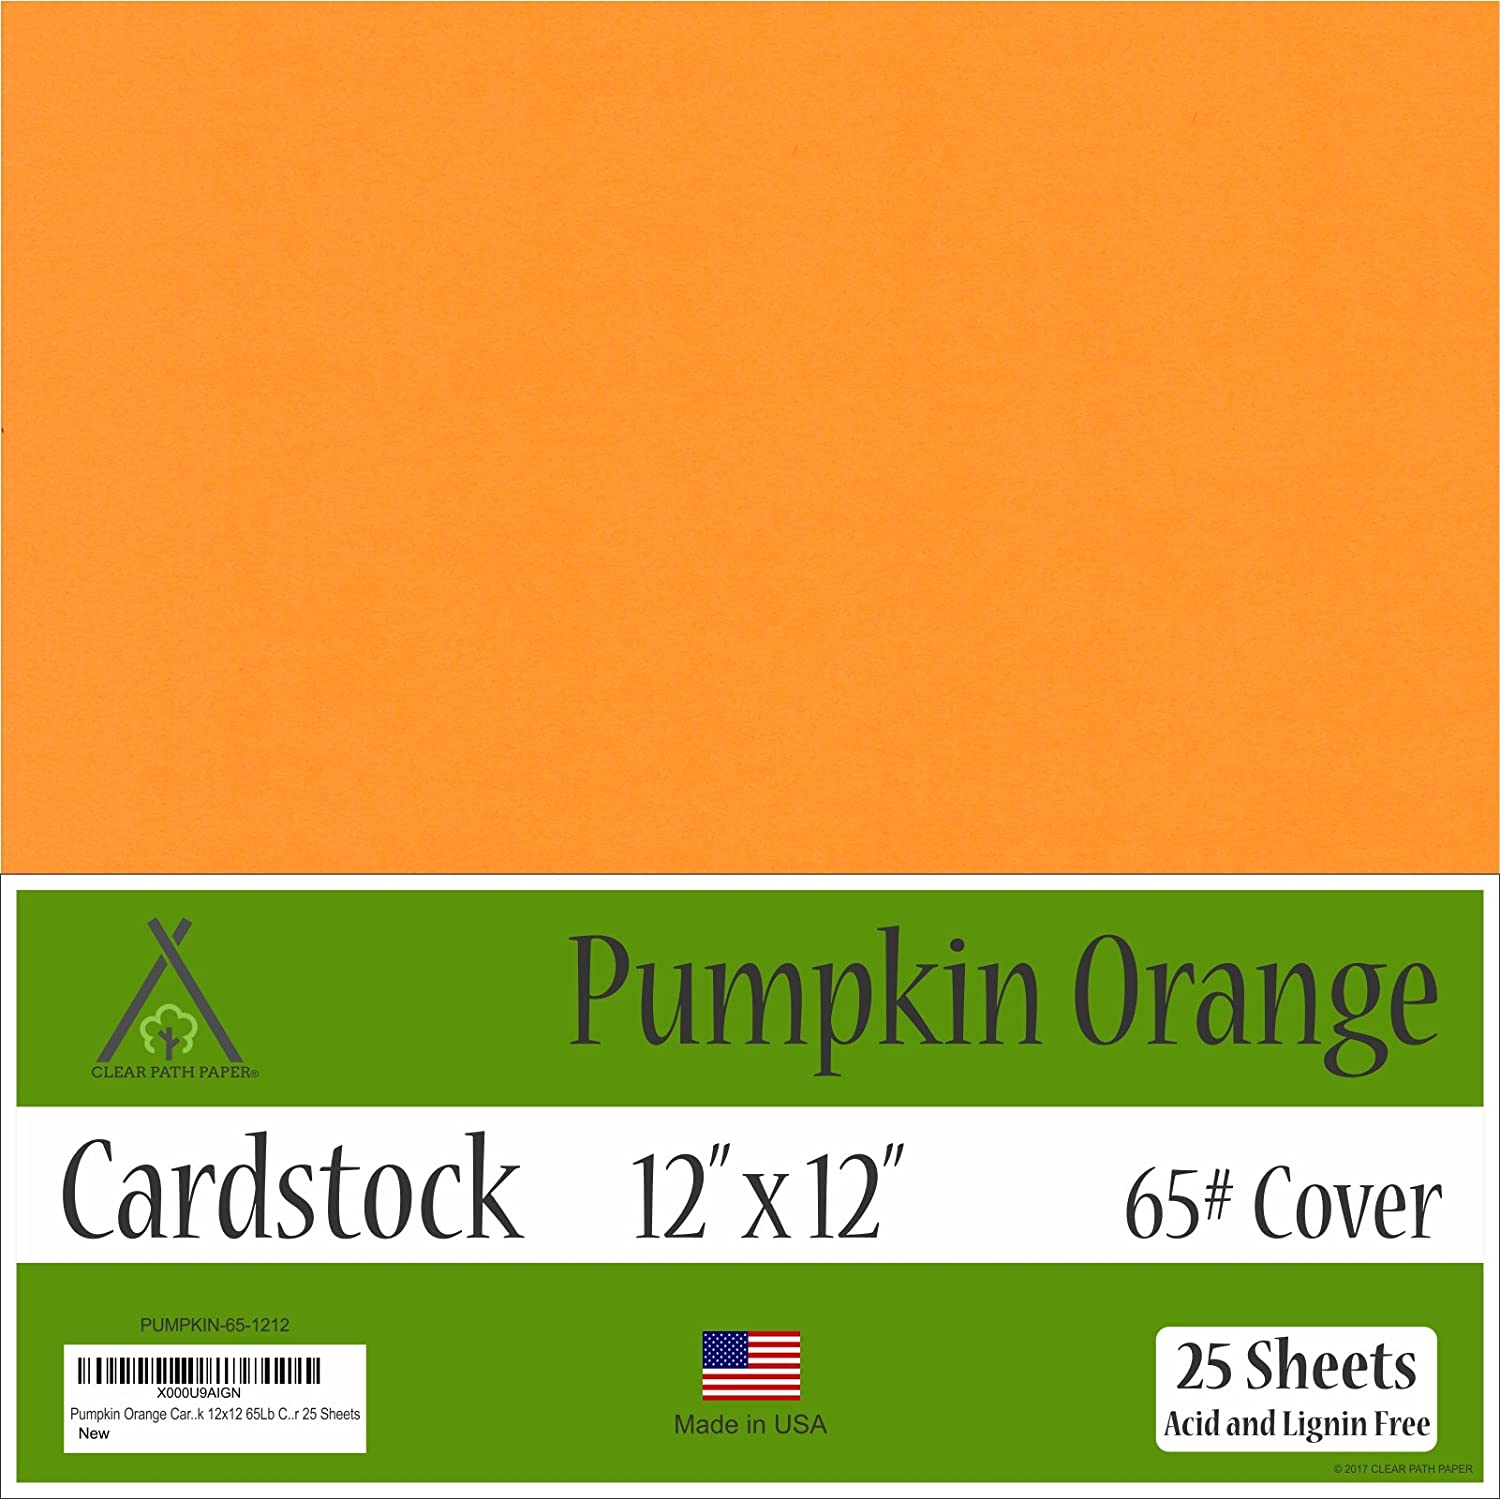 Pumpkin Orange Cardstock - 12 x 12 inch - 65Lb Cover - 25 Sheets Clear Path Paper CW-PUMPKN-1212-PK25